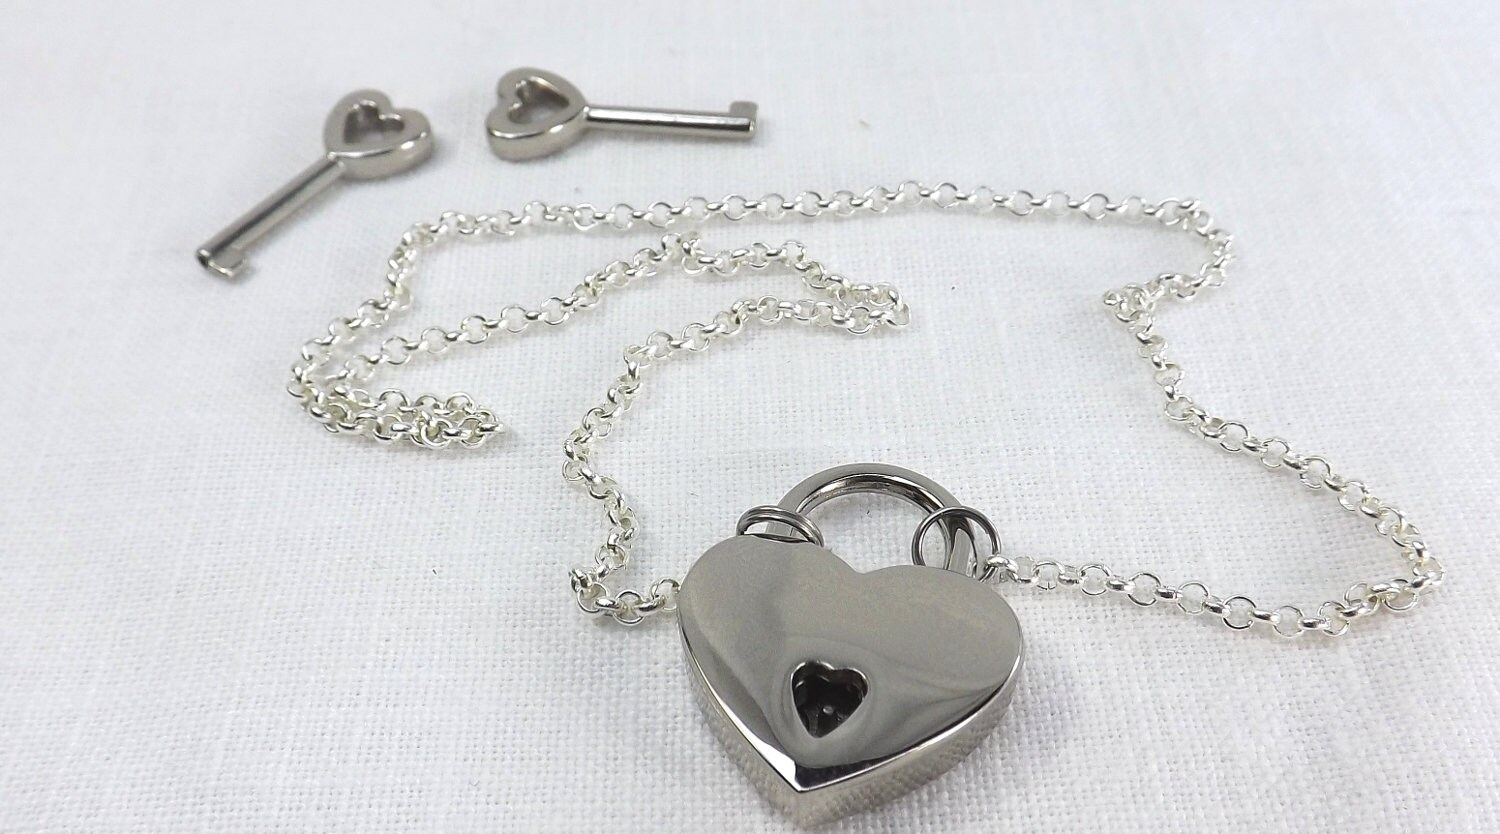 discreet day collar submissive collar heart lock slave collar submissive jewelry lock and chain choker - product images  of